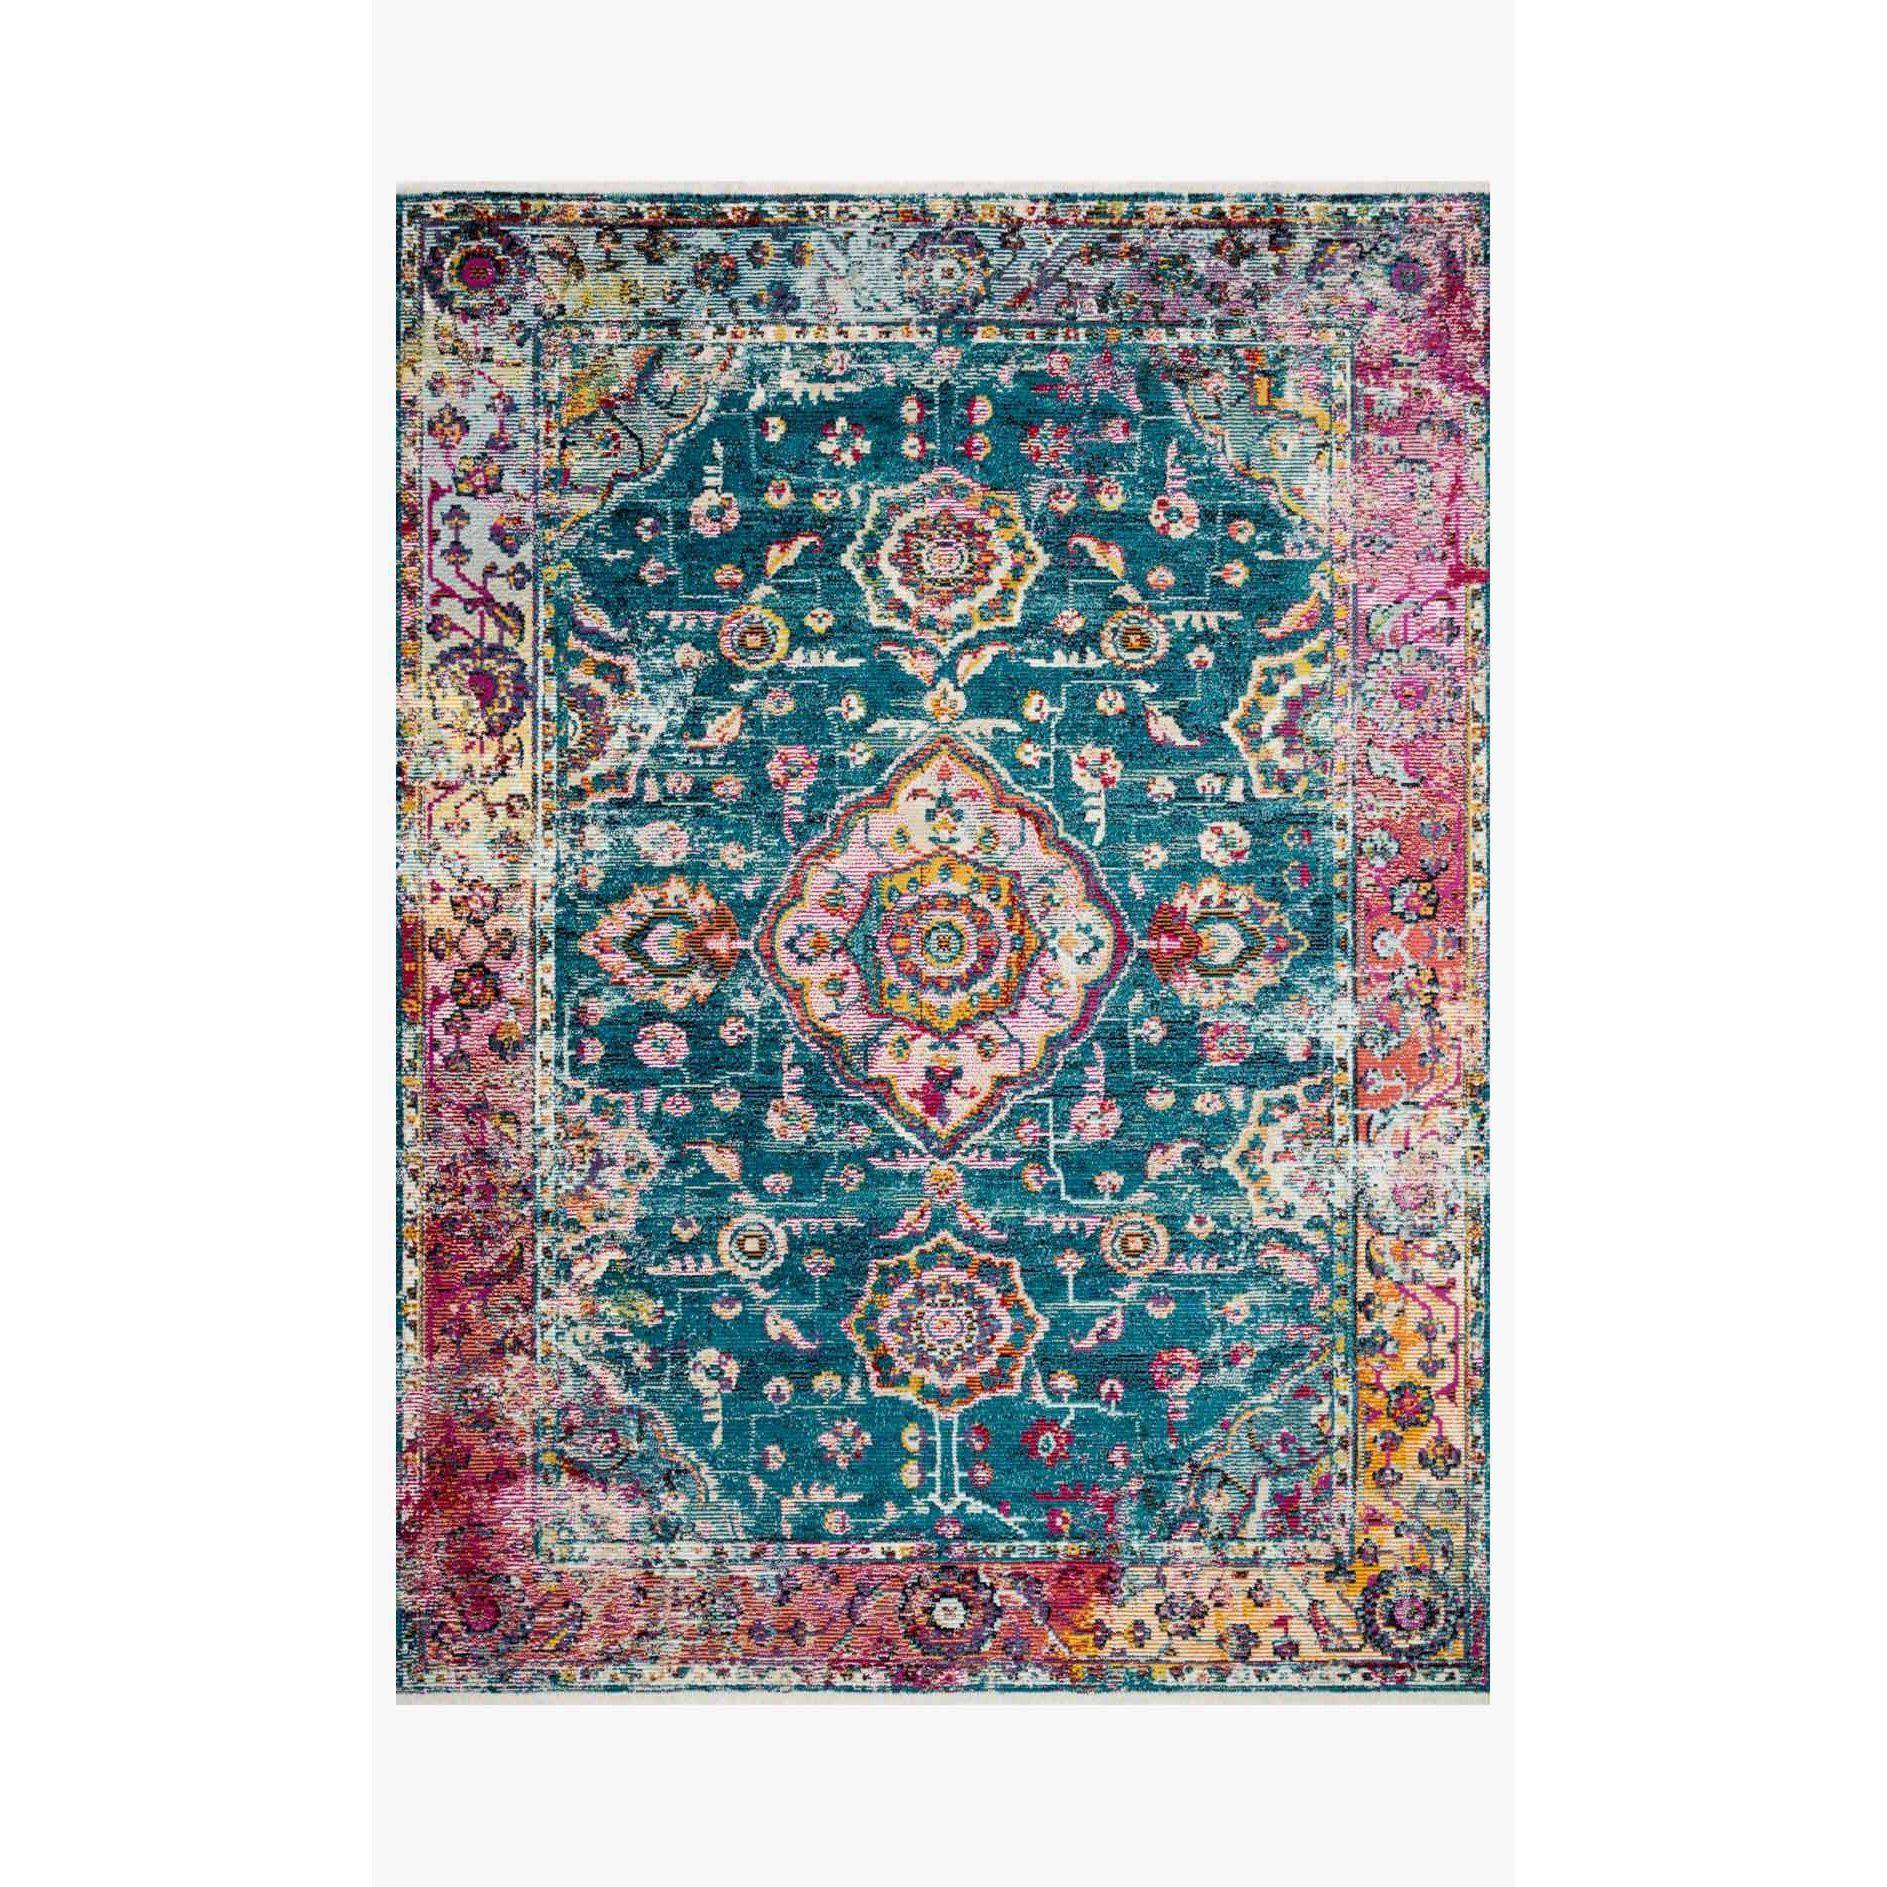 Justina Blakeney Rugs - Silvia - SIL-02 Teal/Berry-Loloi Rugs-Blue Hand Home